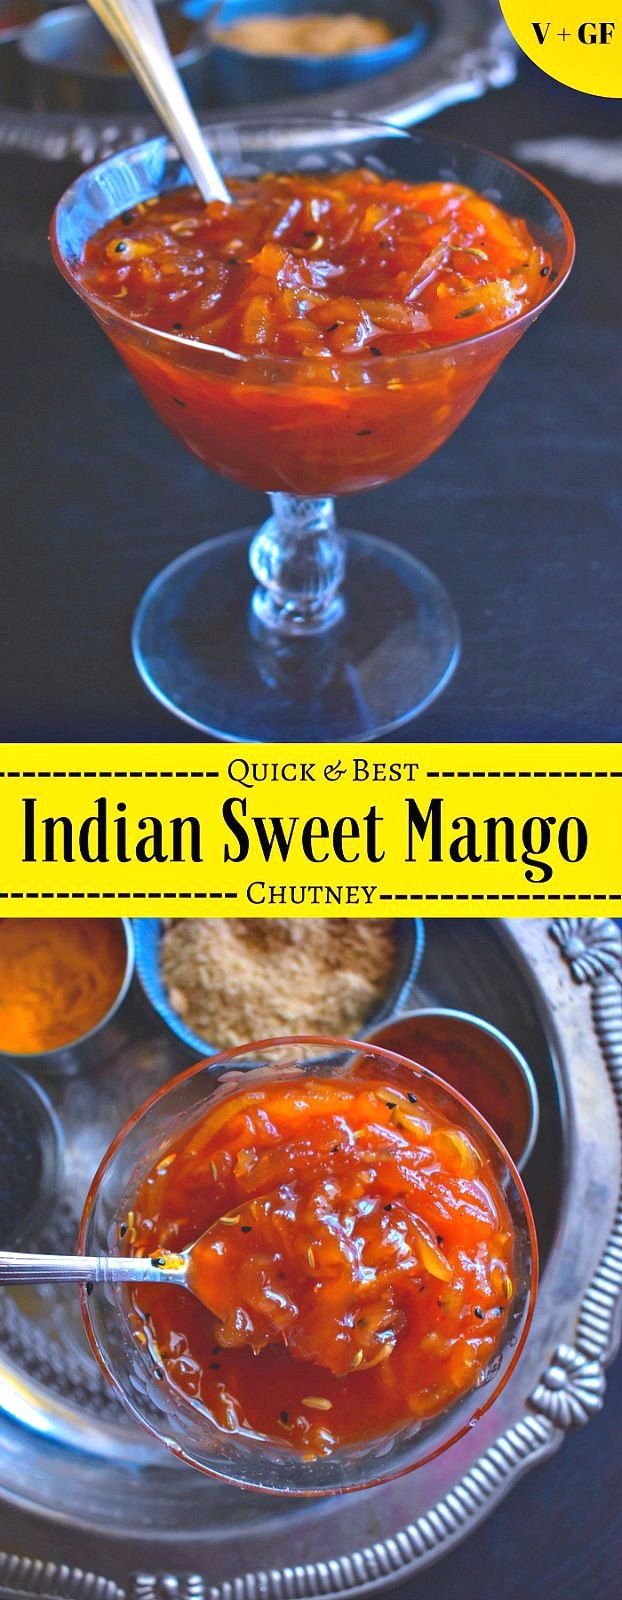 Quick and Best Indian Sweet Mango Chutney Recipe: #mango #chutney #vegan #indian #pickle #mangochutney